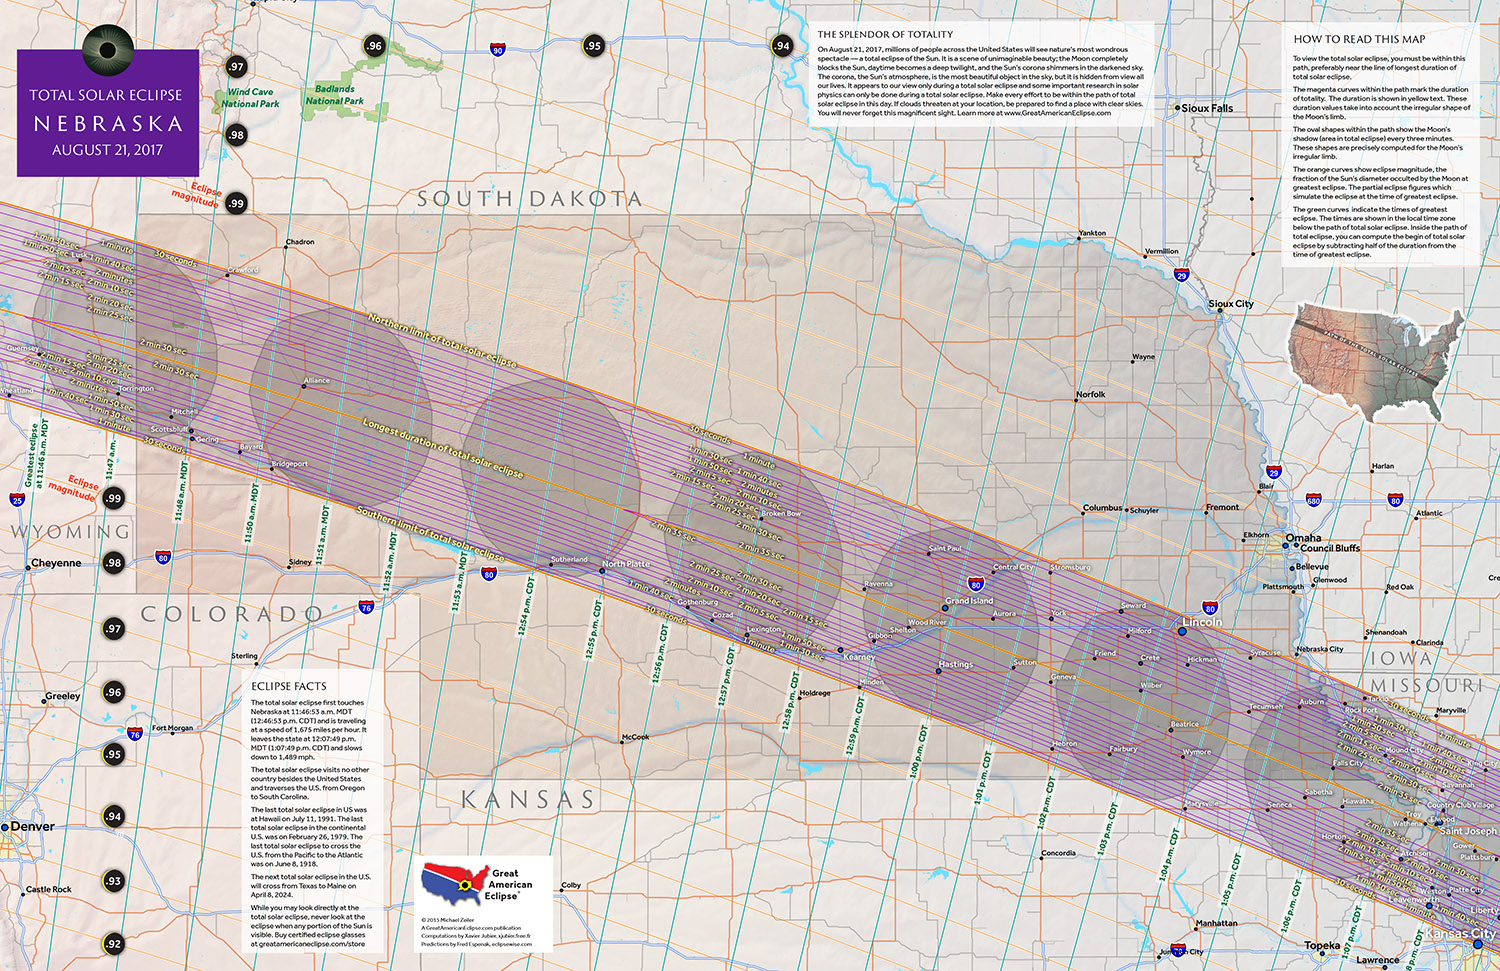 Viewing Site Total Solar Eclipse 2017 Nebraska Map United States America